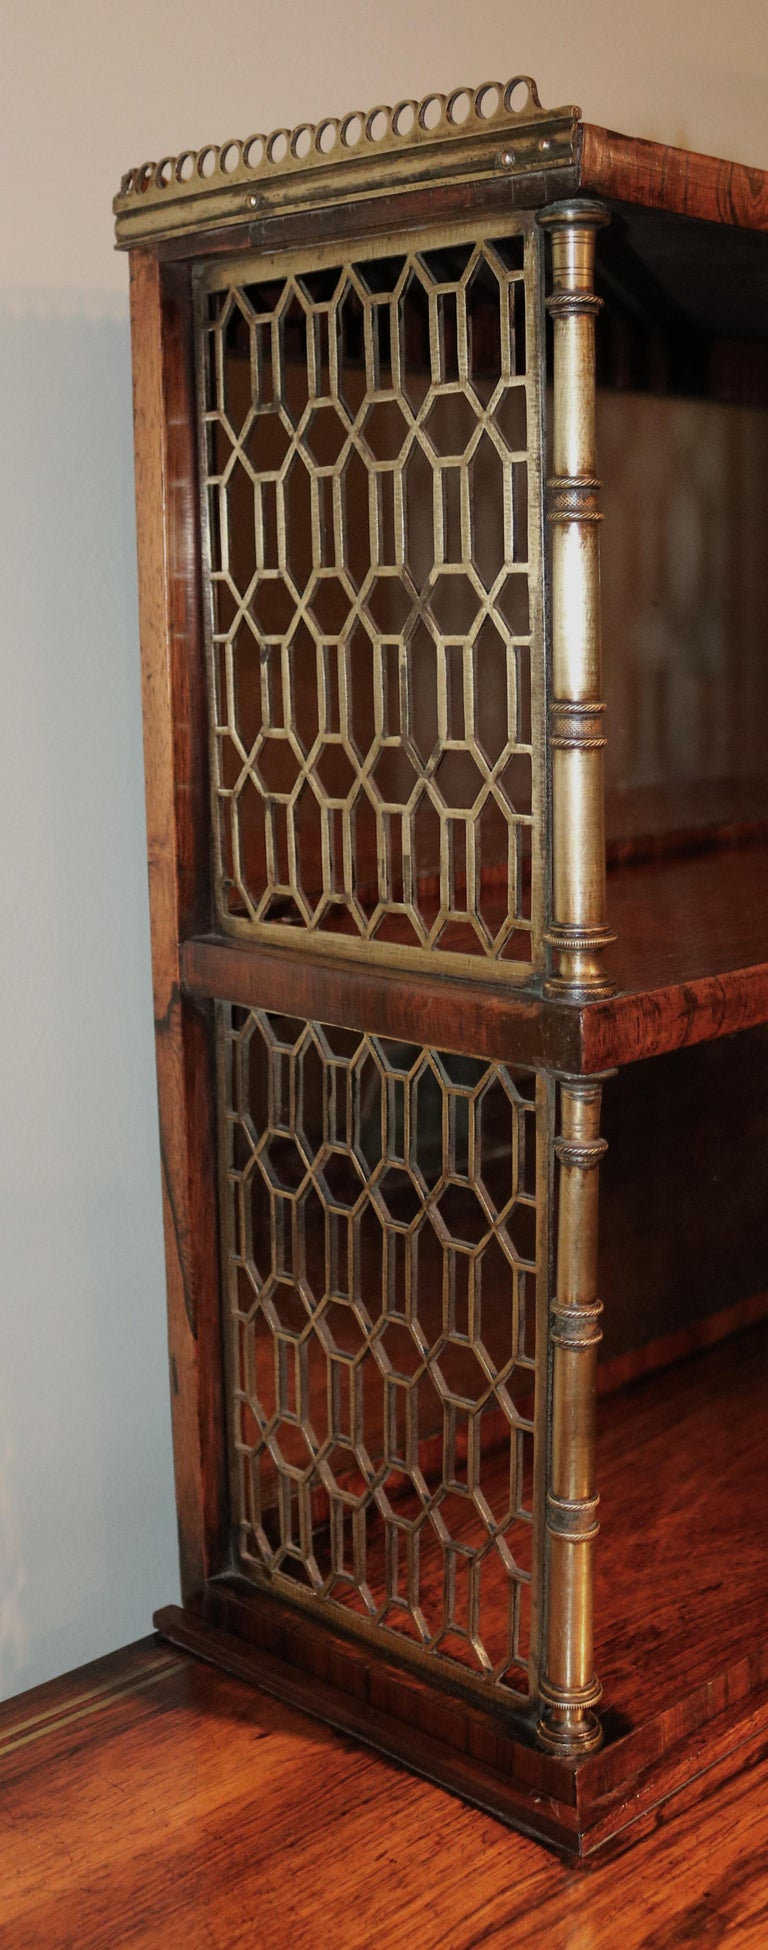 An important early 19th century Regency period rosewood and brass inlaid breakfront chiffonier, having mirrored galleried upper part with fretwork and column sides, above gilt brass edged top and frieze drawers with inlaid swag and phoenix panels,